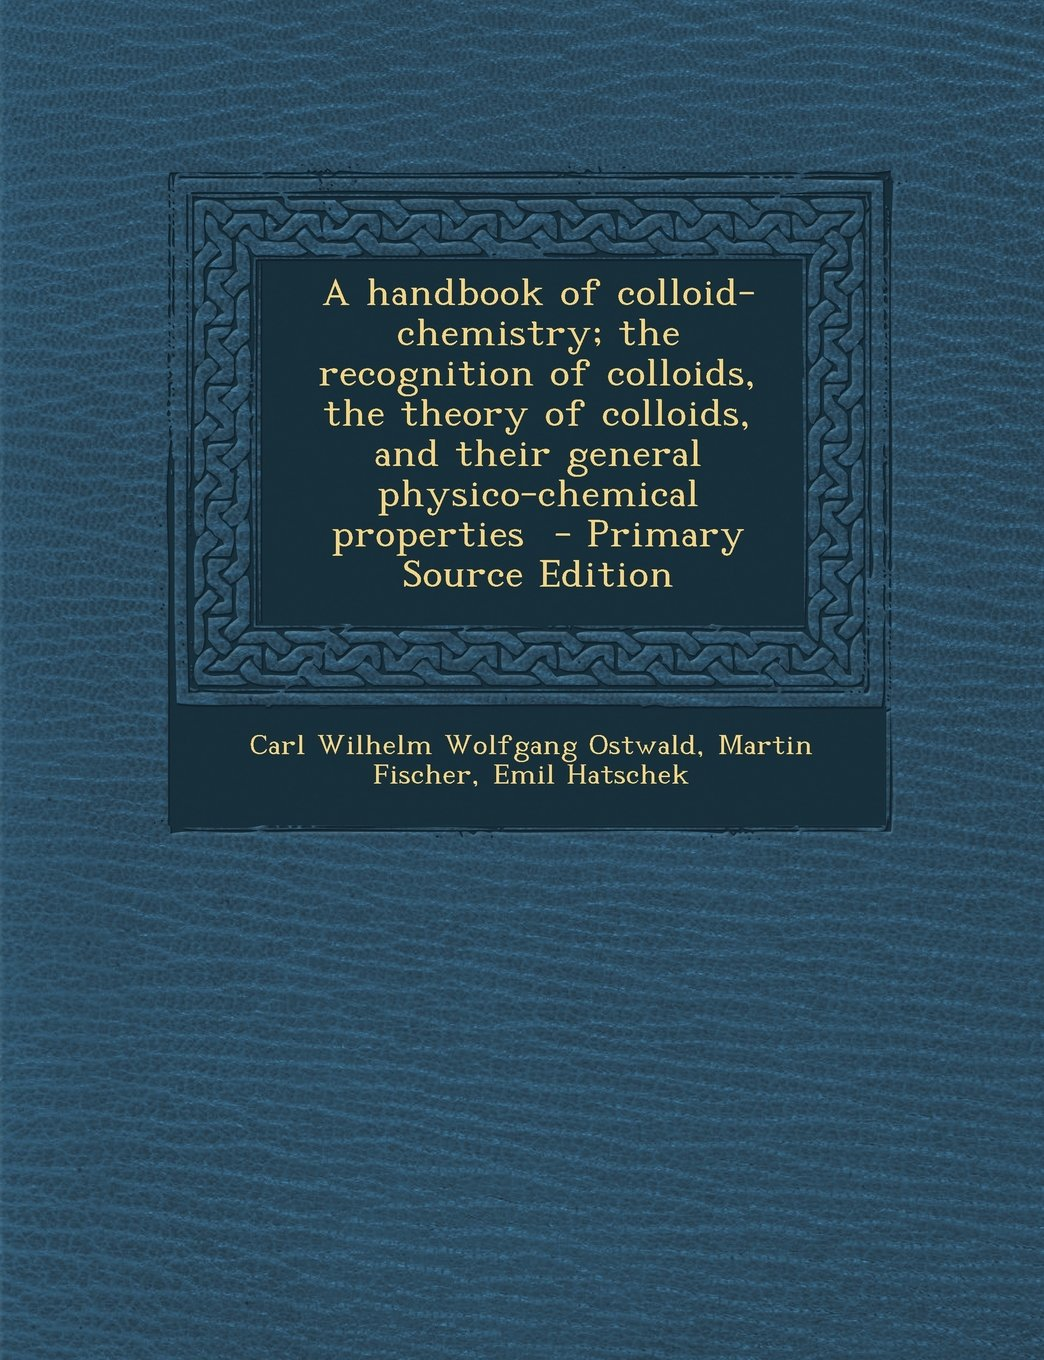 A handbook of colloid-chemistry; the recognition of colloids, the theory of colloids, and their general physico-chemical properties  - Primary Source Edition ebook